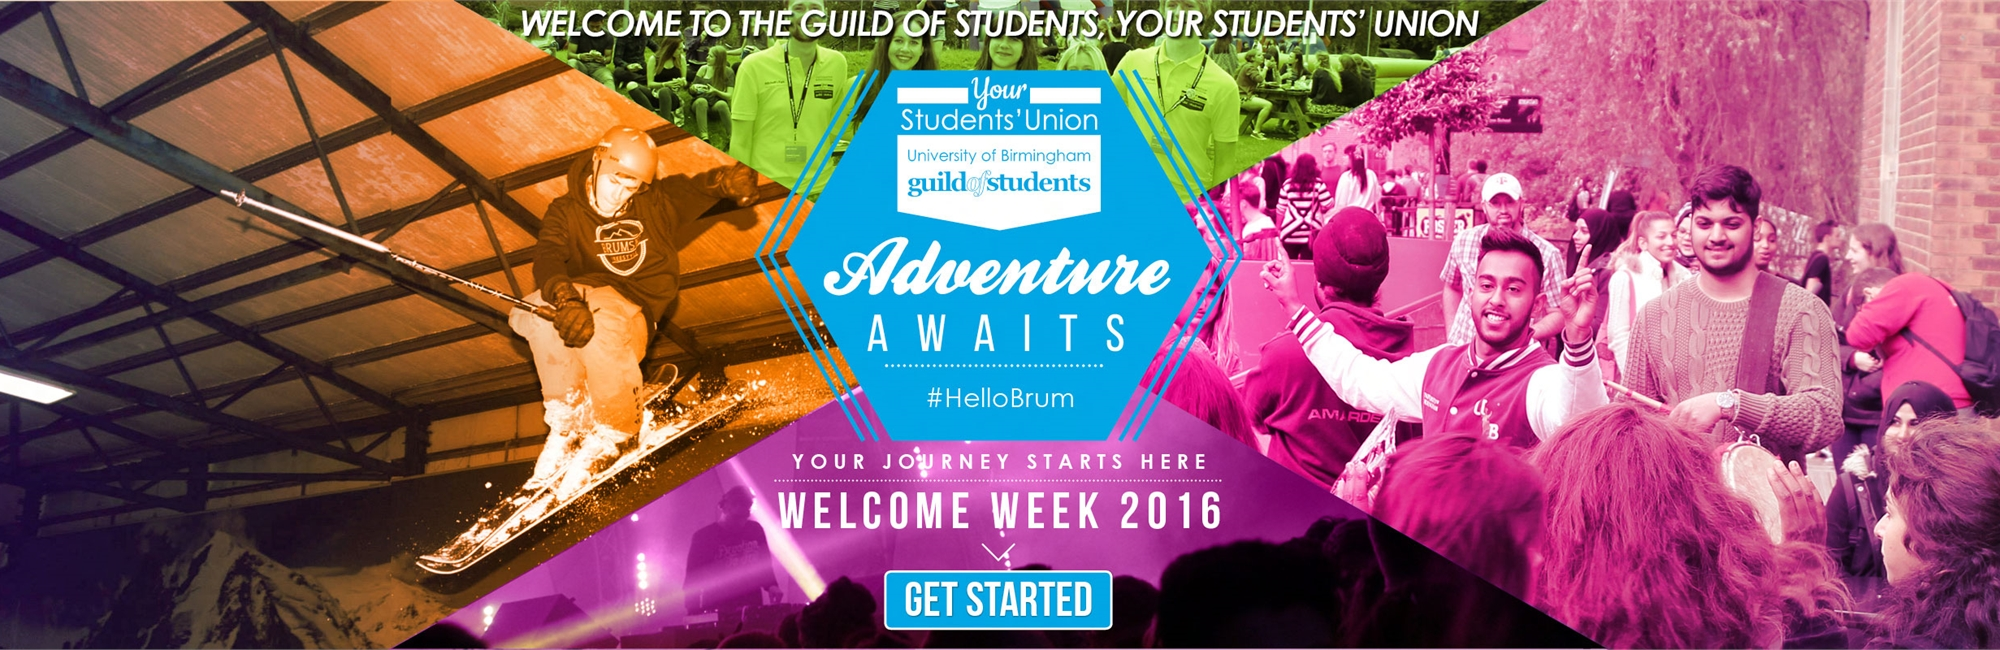 adventure awaits banner for start of new academic year 2016-17